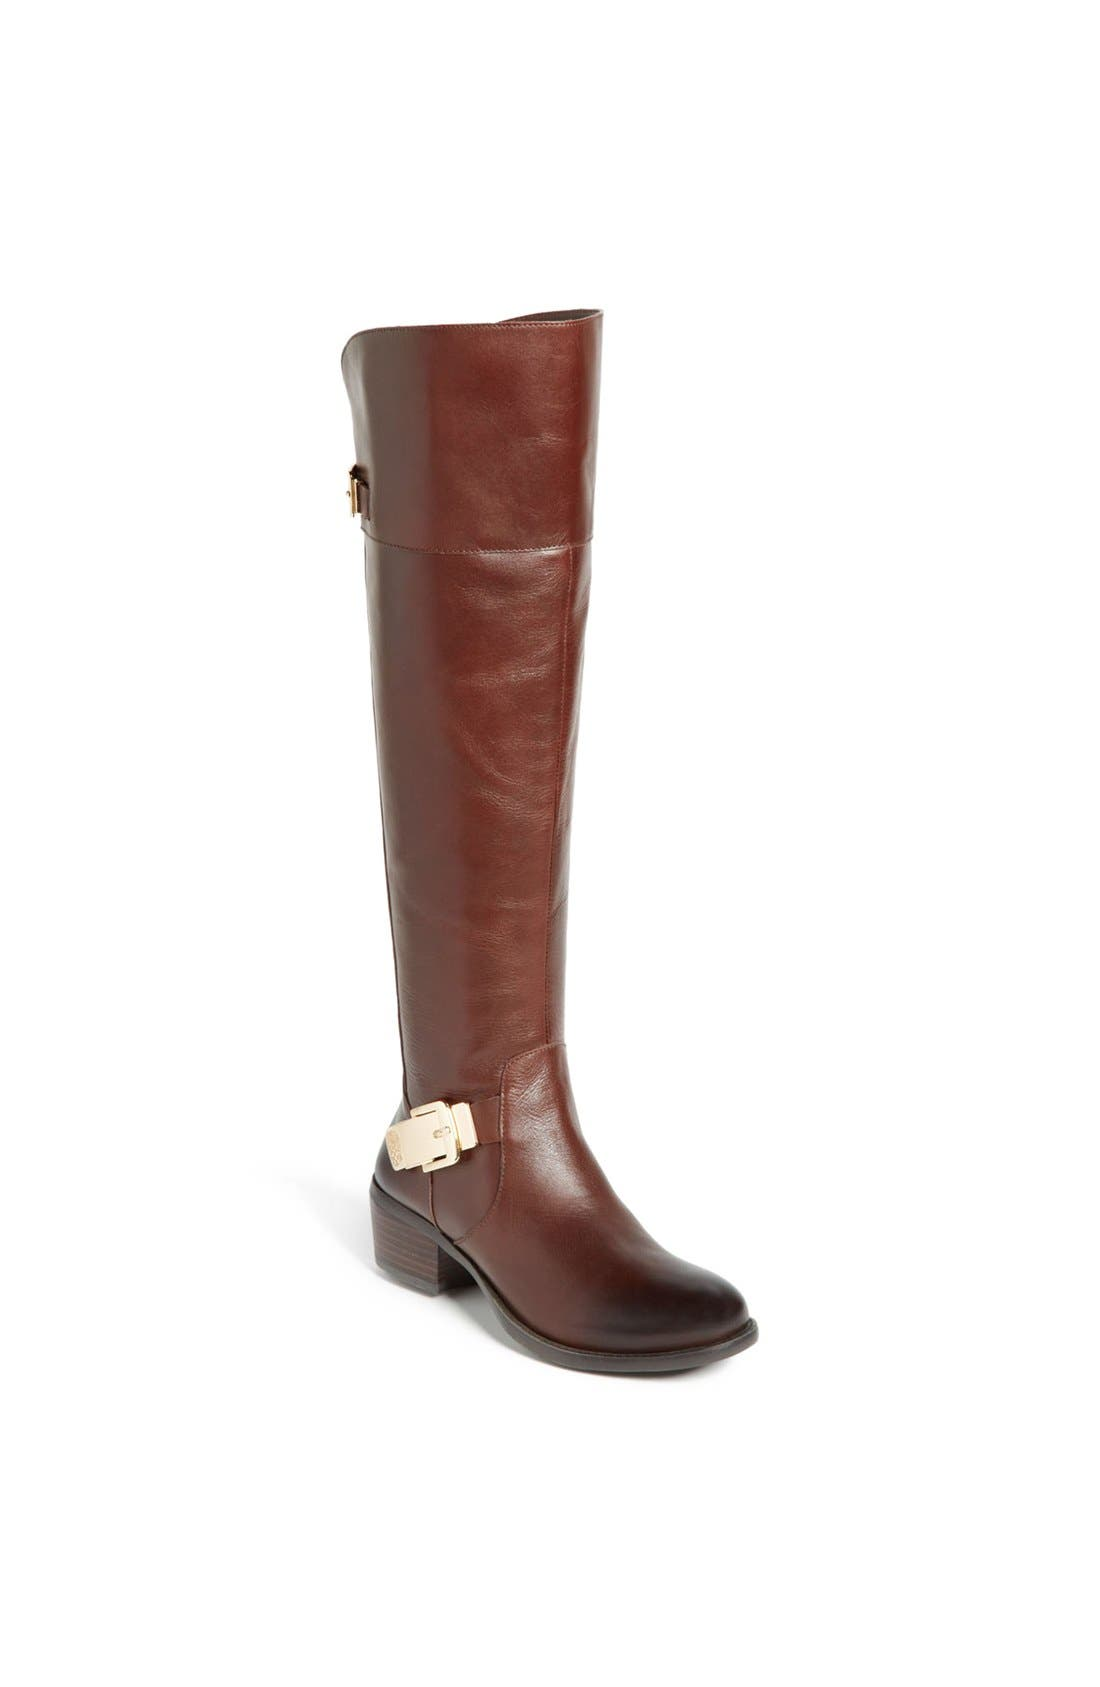 Alternate Image 1 Selected - Vince Camuto 'Bocca' Over the Knee Boot